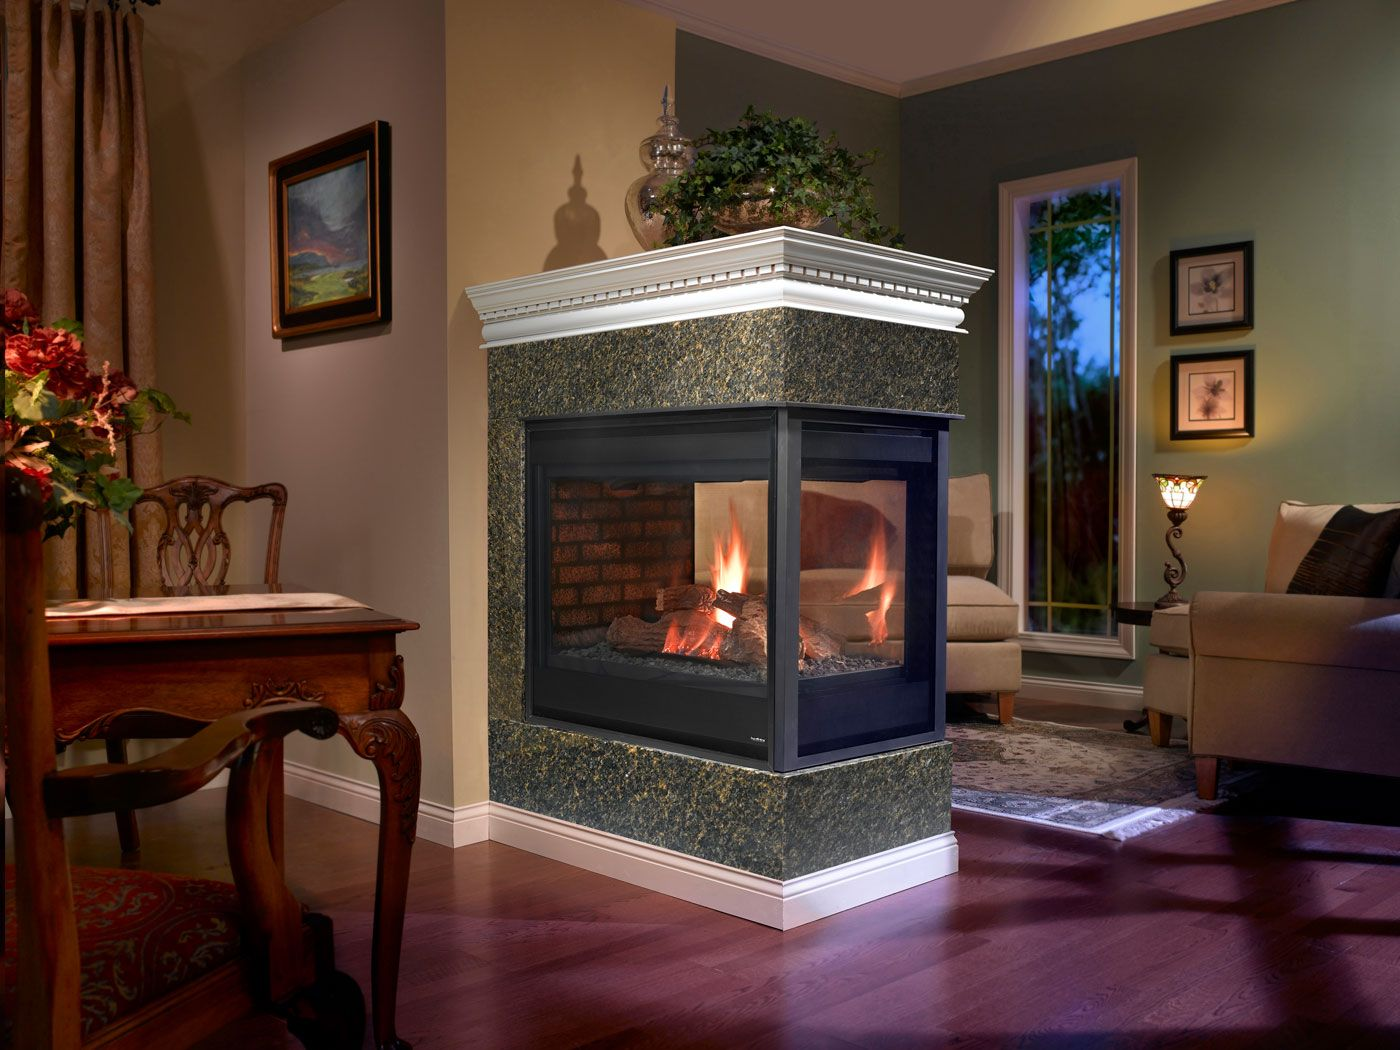 11 best fireplaces images on pinterest 3 sided fireplace